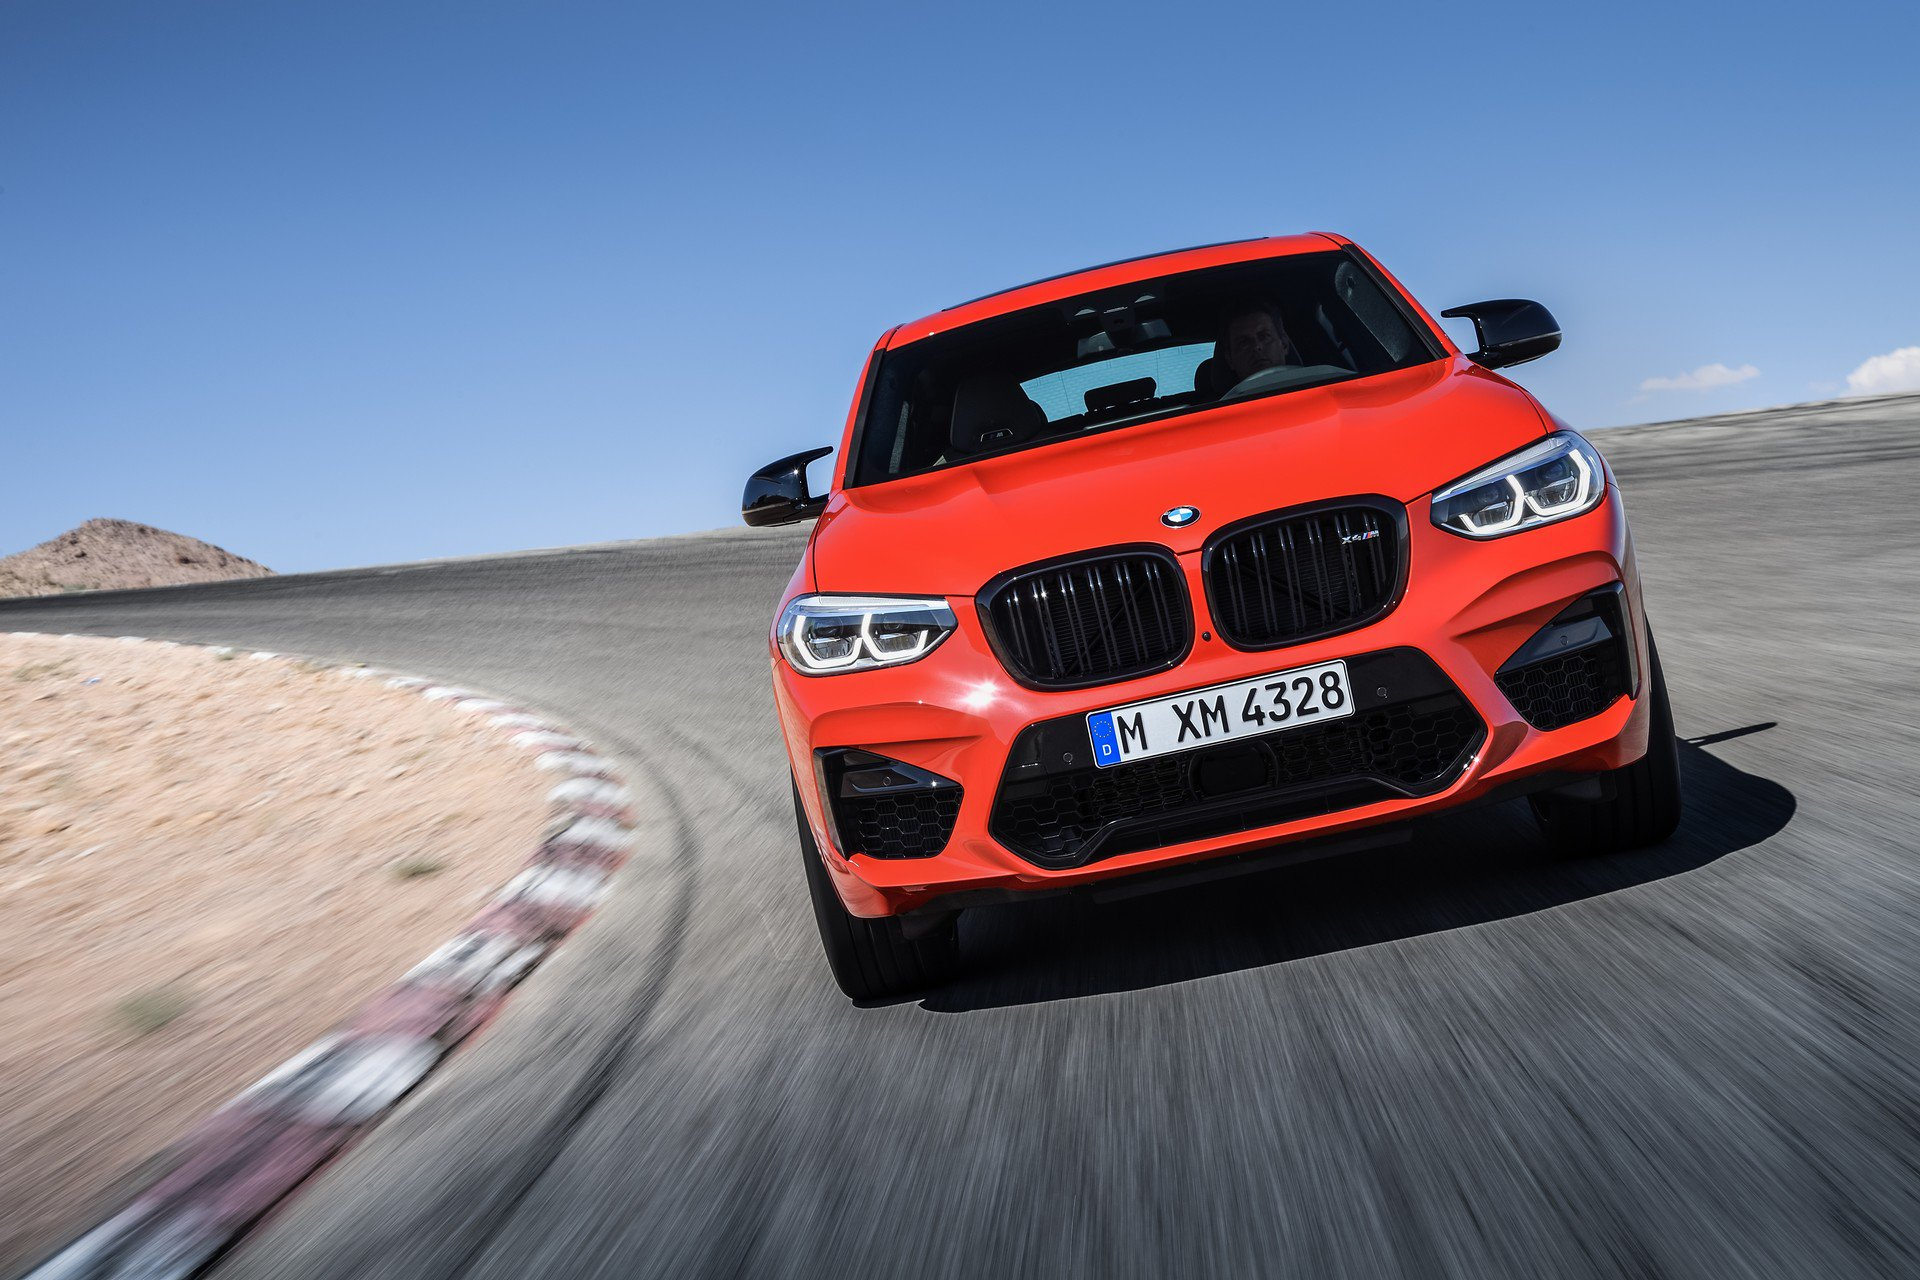 2020-bmw-x3-m-and-x4-m-27.jpg